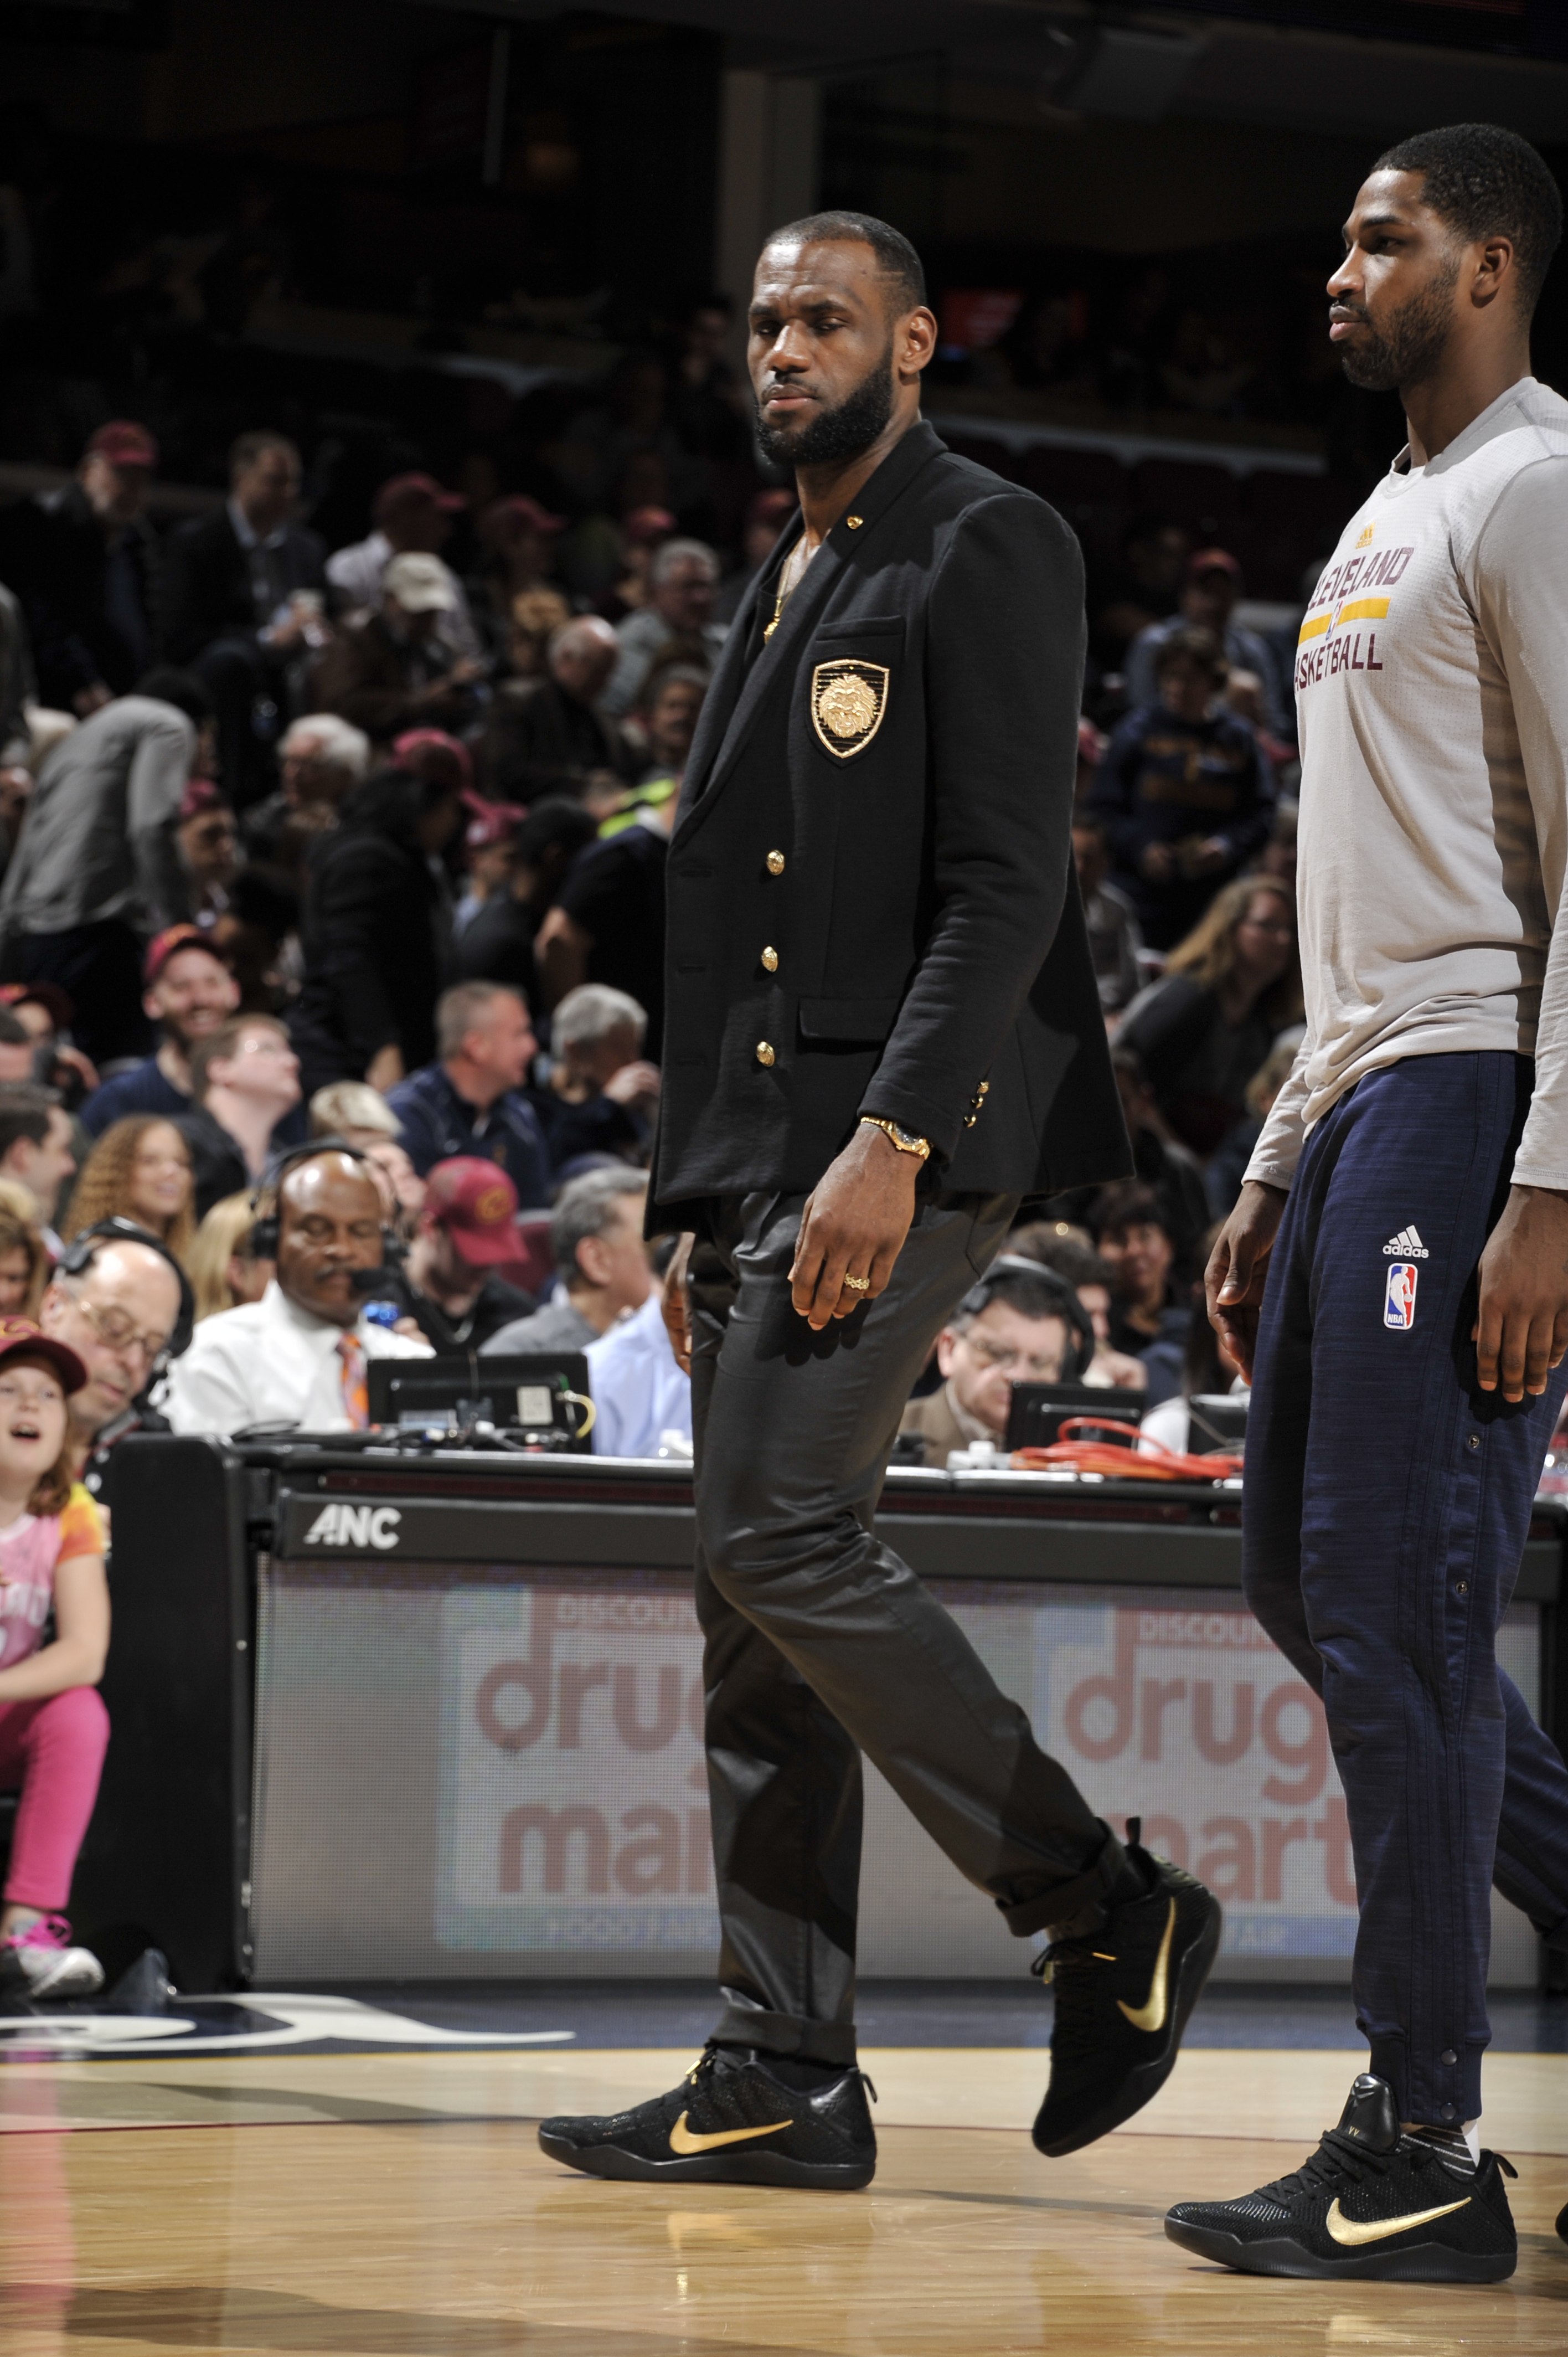 CLEVELAND, OH - APRIL 13:  LeBron James #23 of the Cleveland Cavaliers and Tristan Thompson #13 of the Cleveland Cavaliers wear commemorative Mamba Day sneakers during the game against the Detroit Pistons on April 13, 2016 at Quicken Loans Arena in Clevel